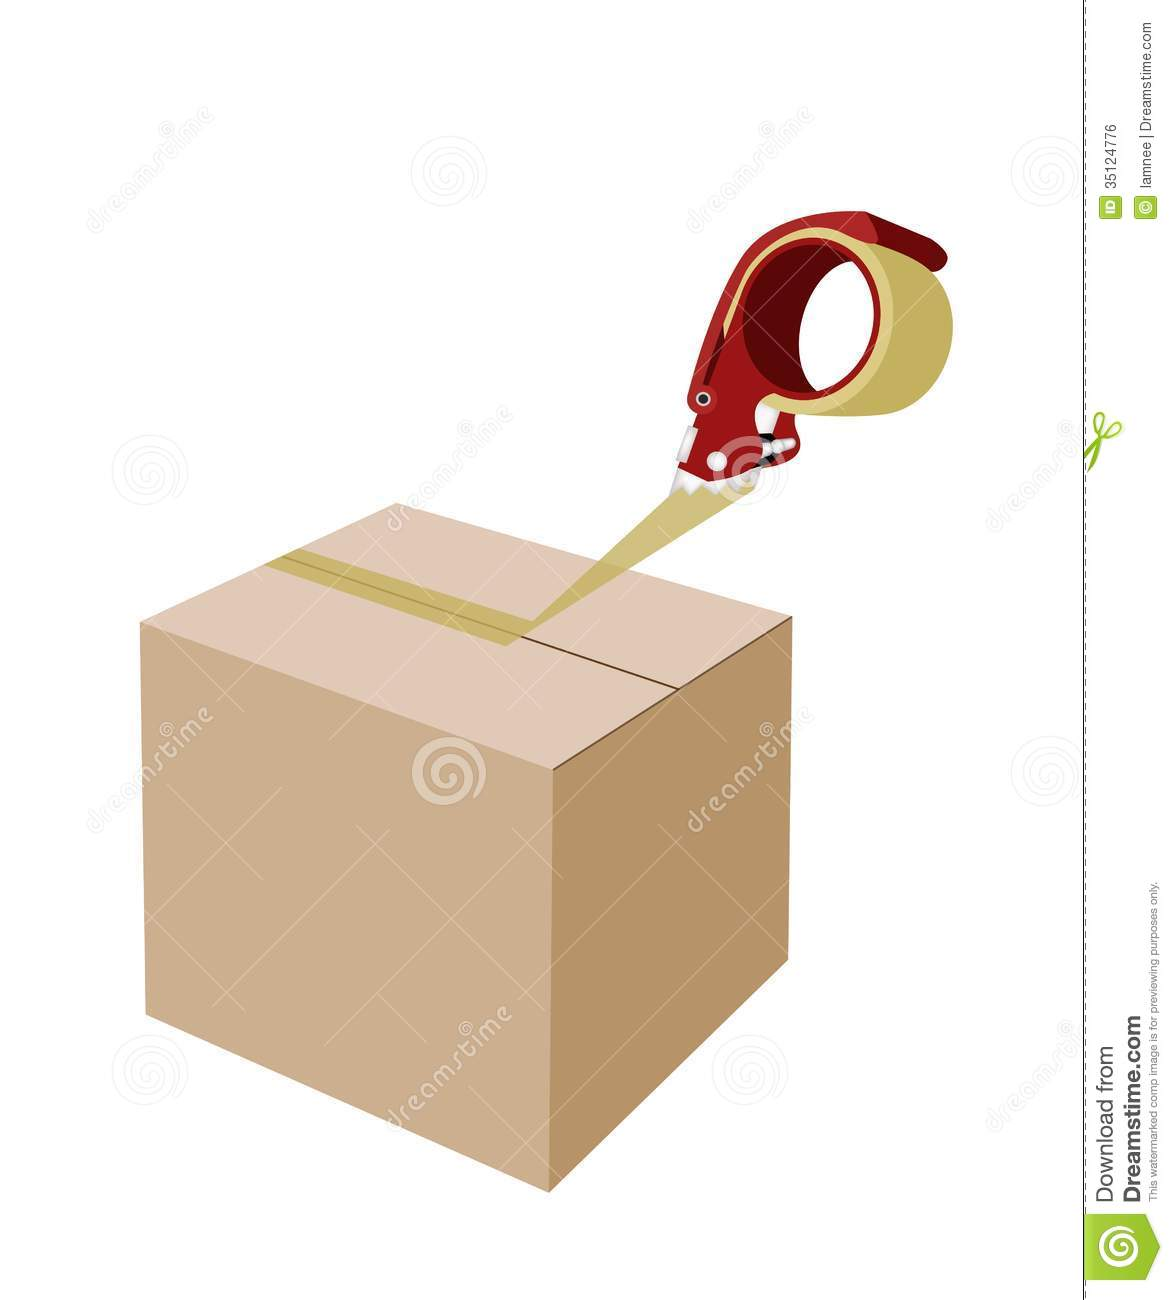 Red Packing Tape Dispenser or Adhesive Tape Dispenser Closing A Brown ...